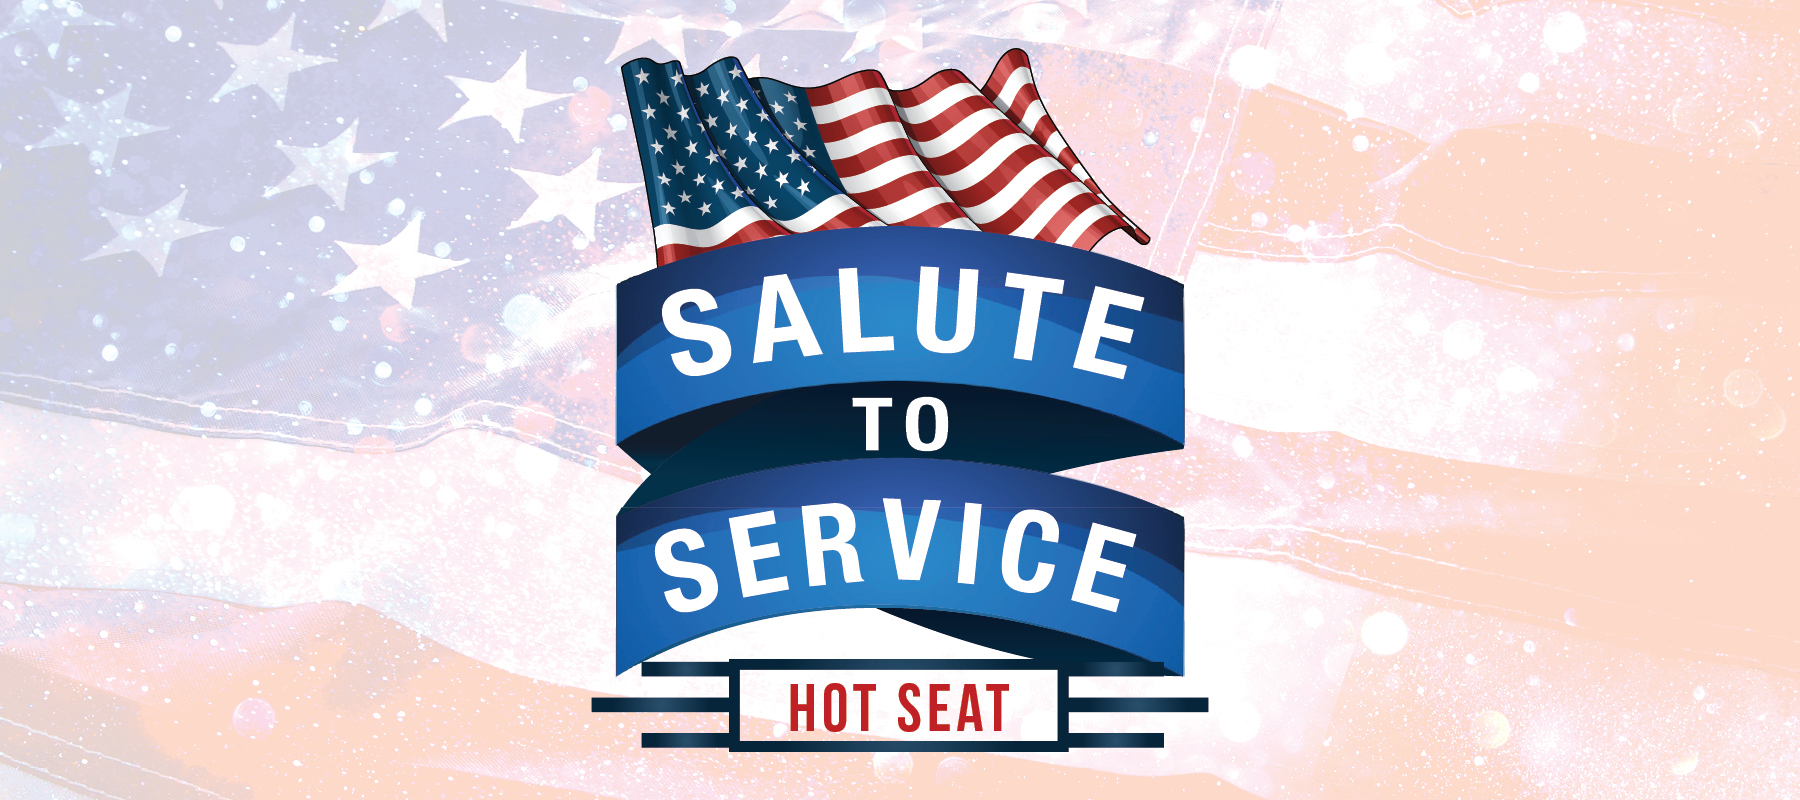 Salute To Service Hot Seat